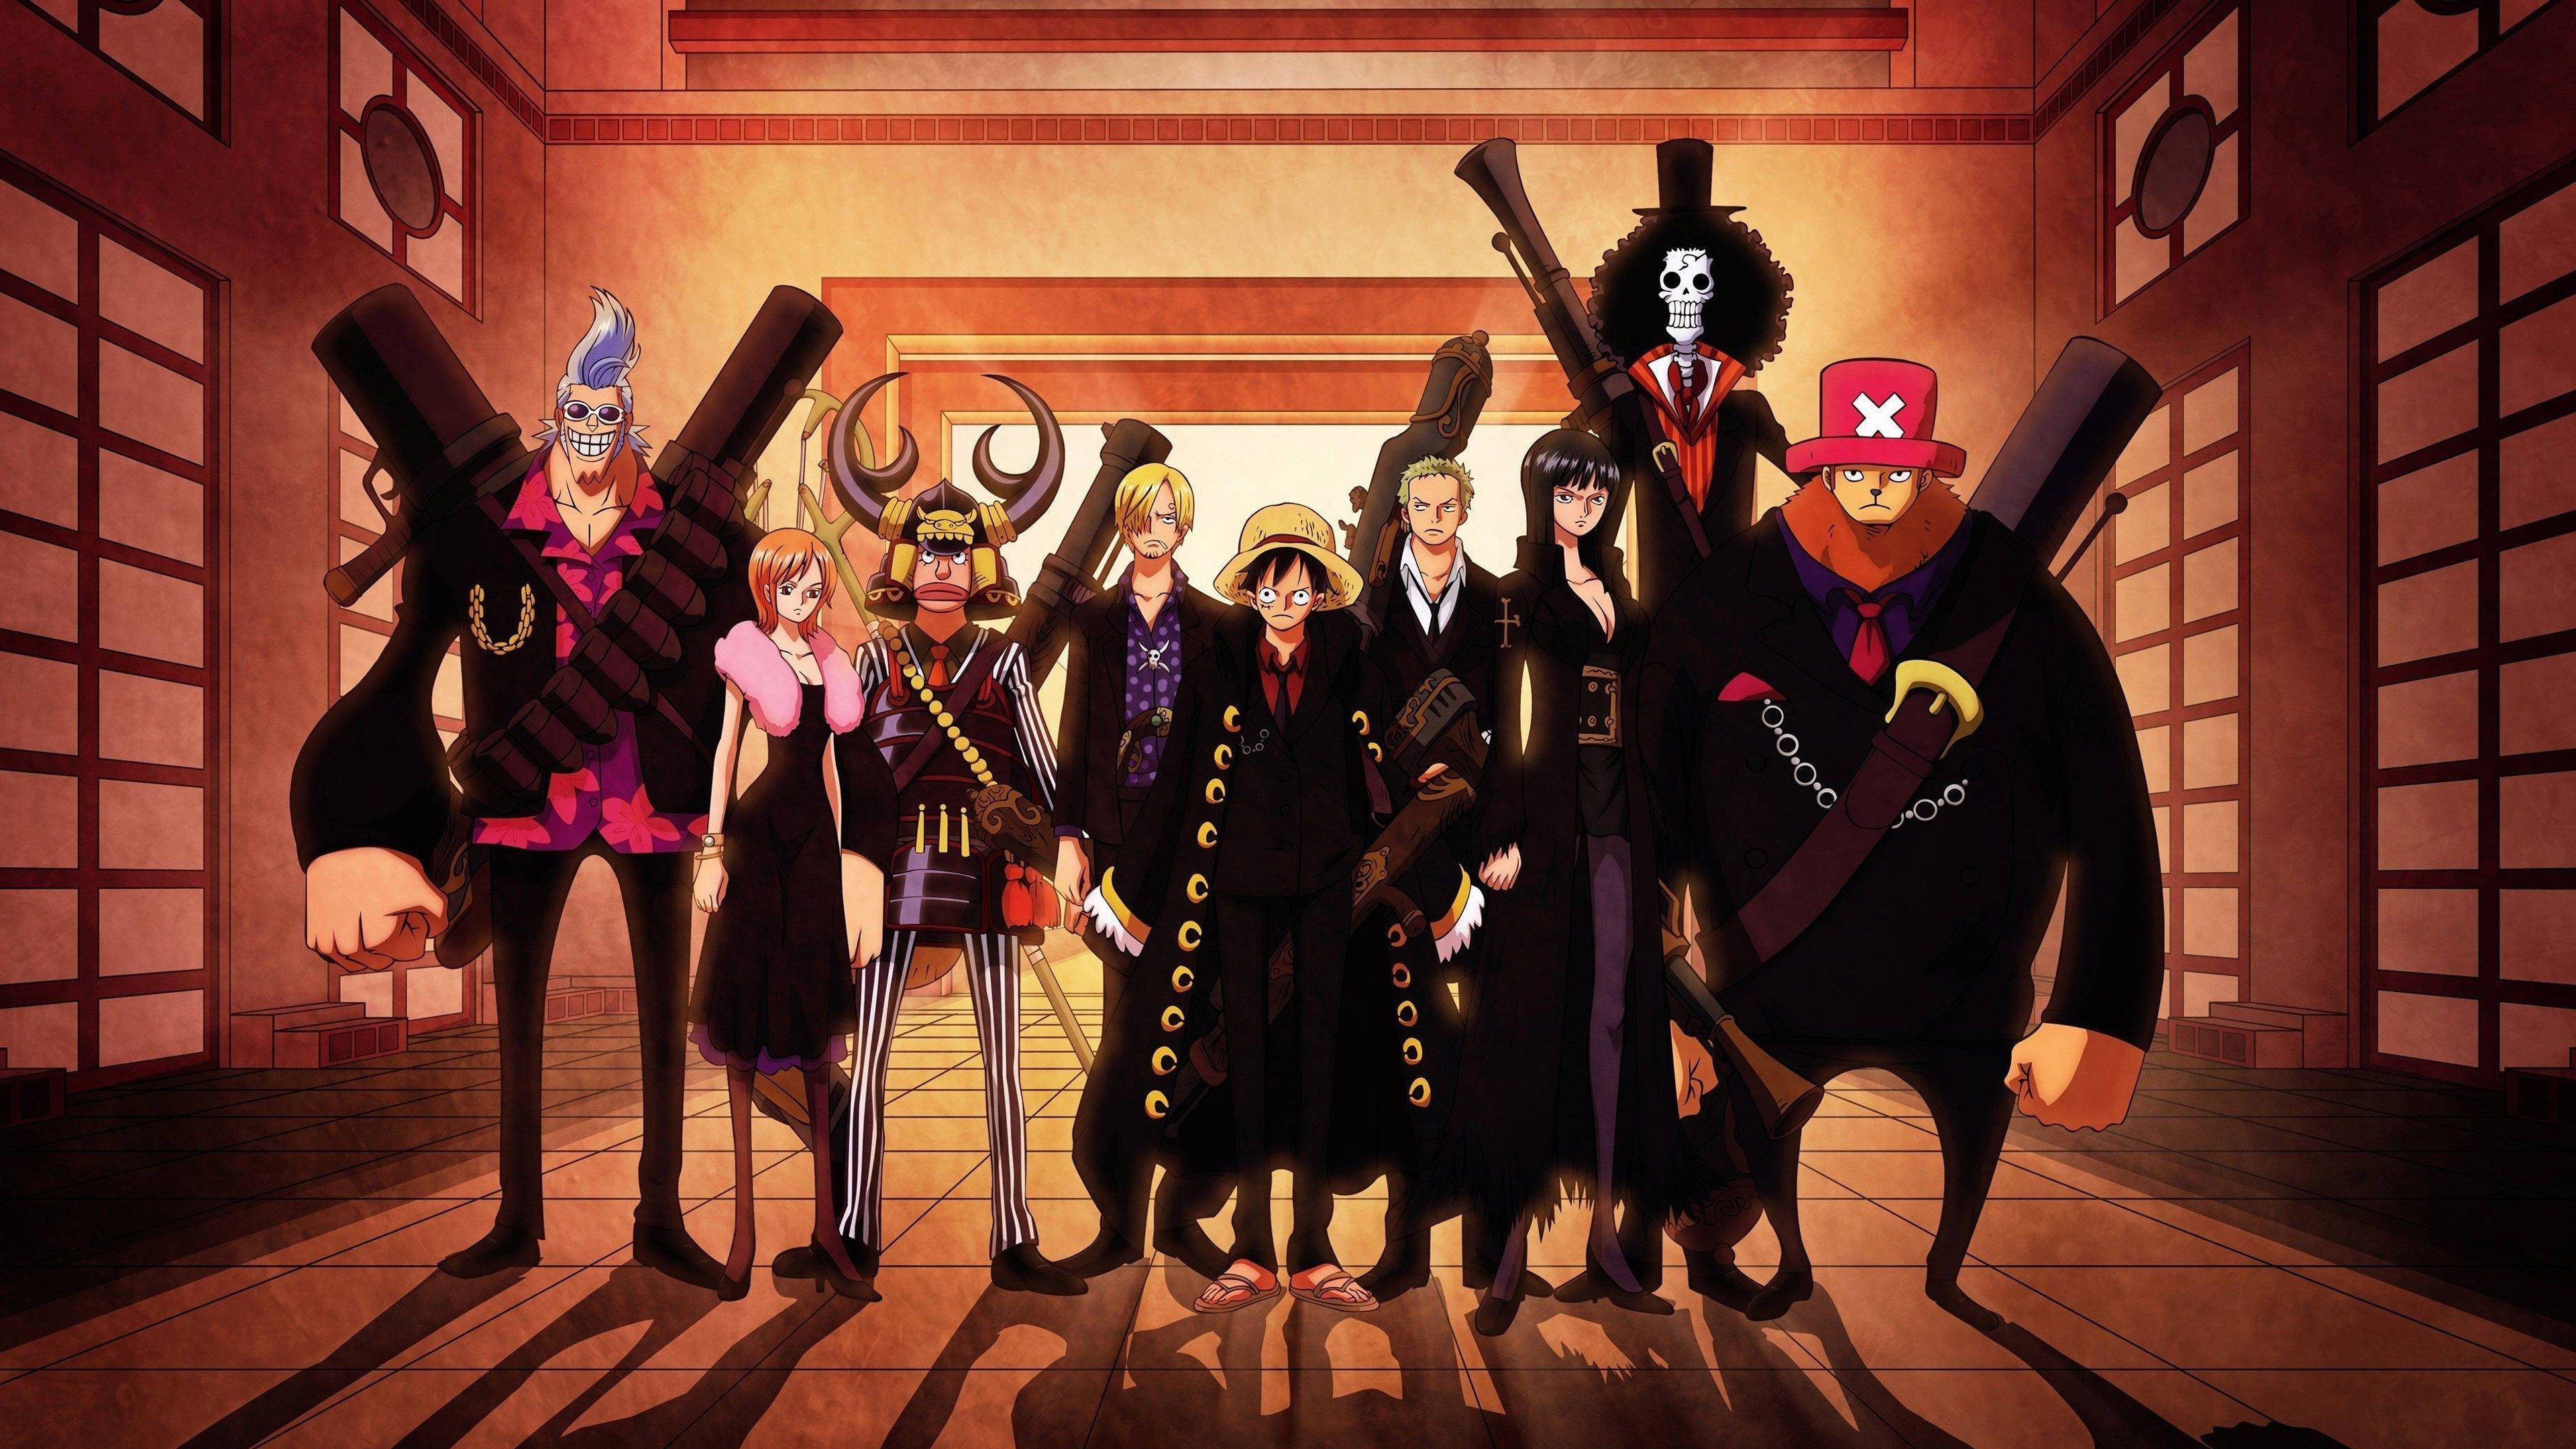 Download top free images for pc and mobile: 3840x2160 one piece 4k desktop high resolution wallpapers ...